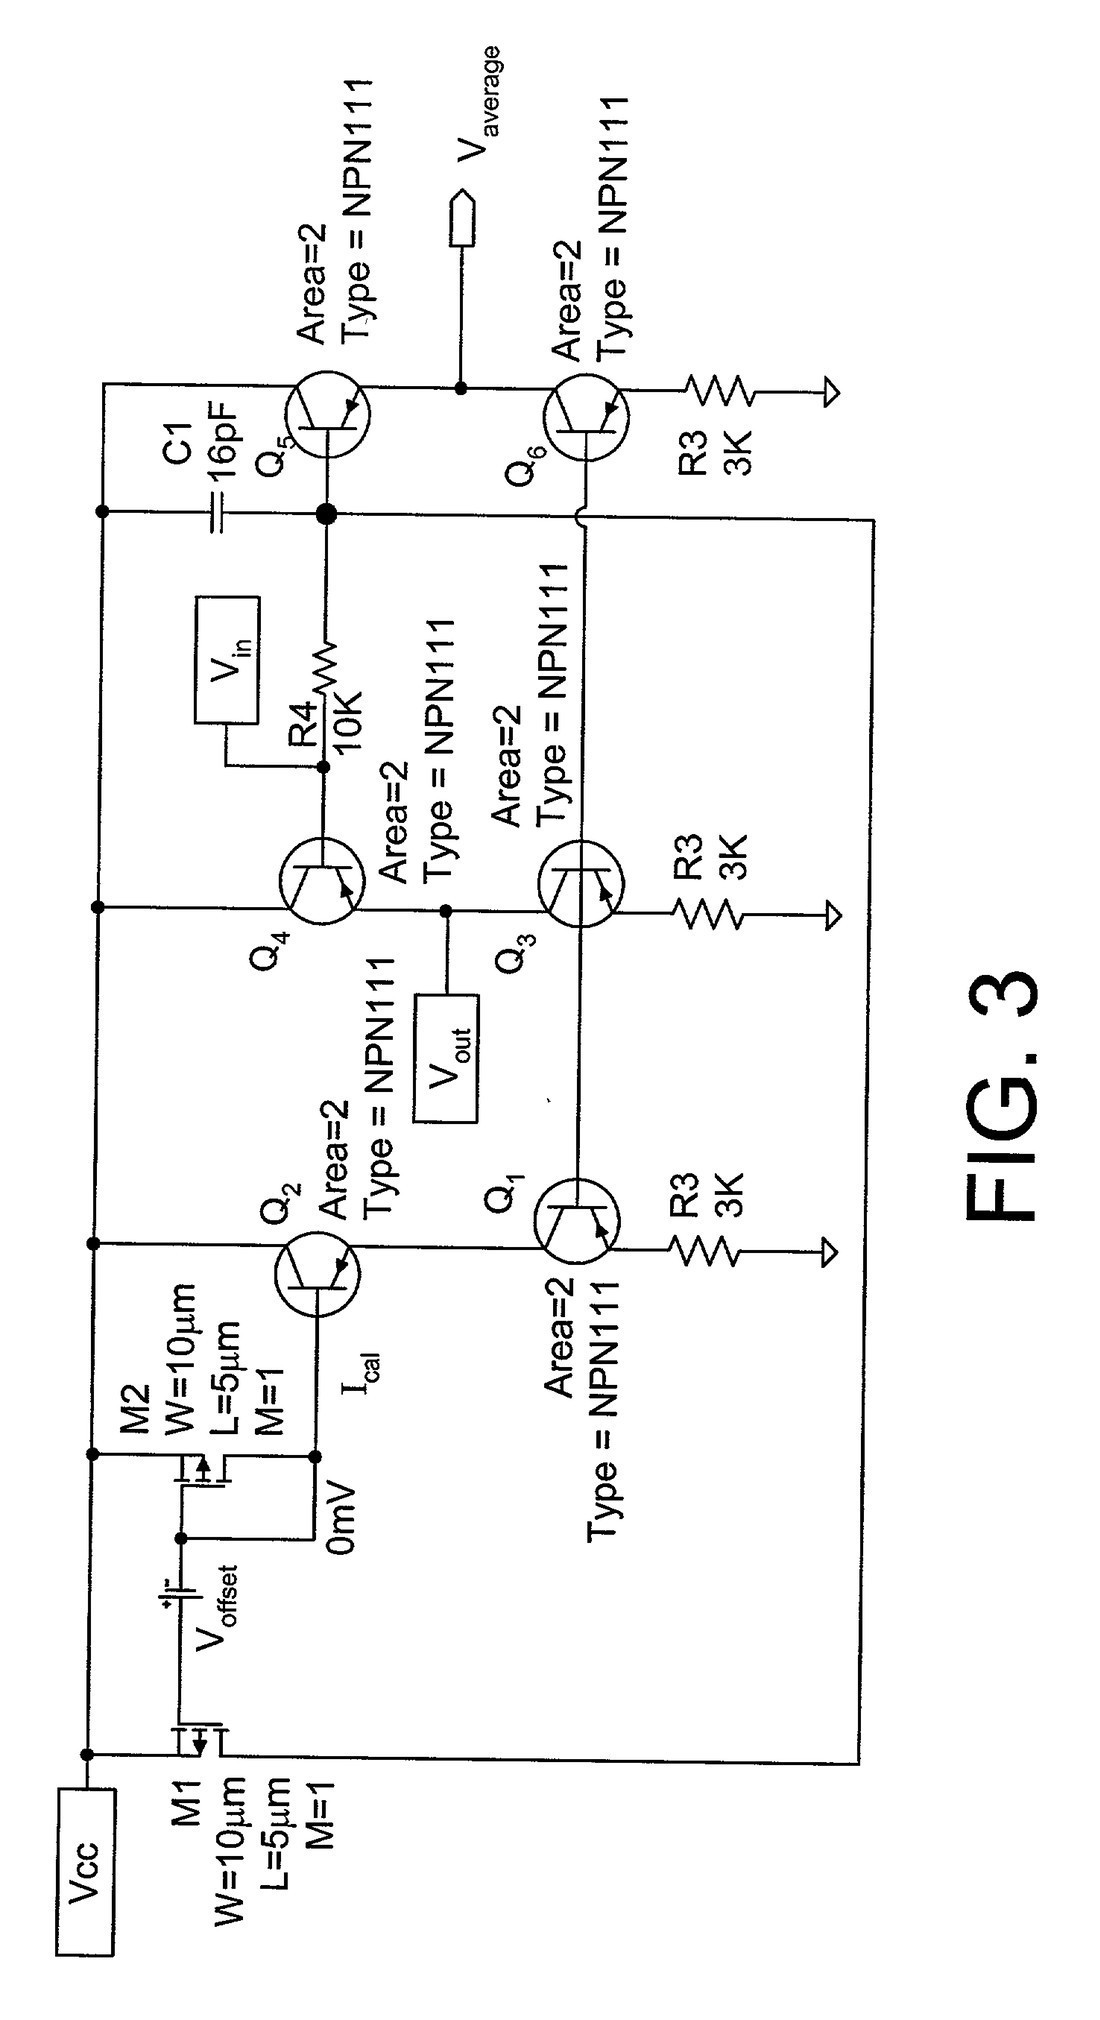 Solar Garden Lights Circuit Diagram Wiring Diagram Image